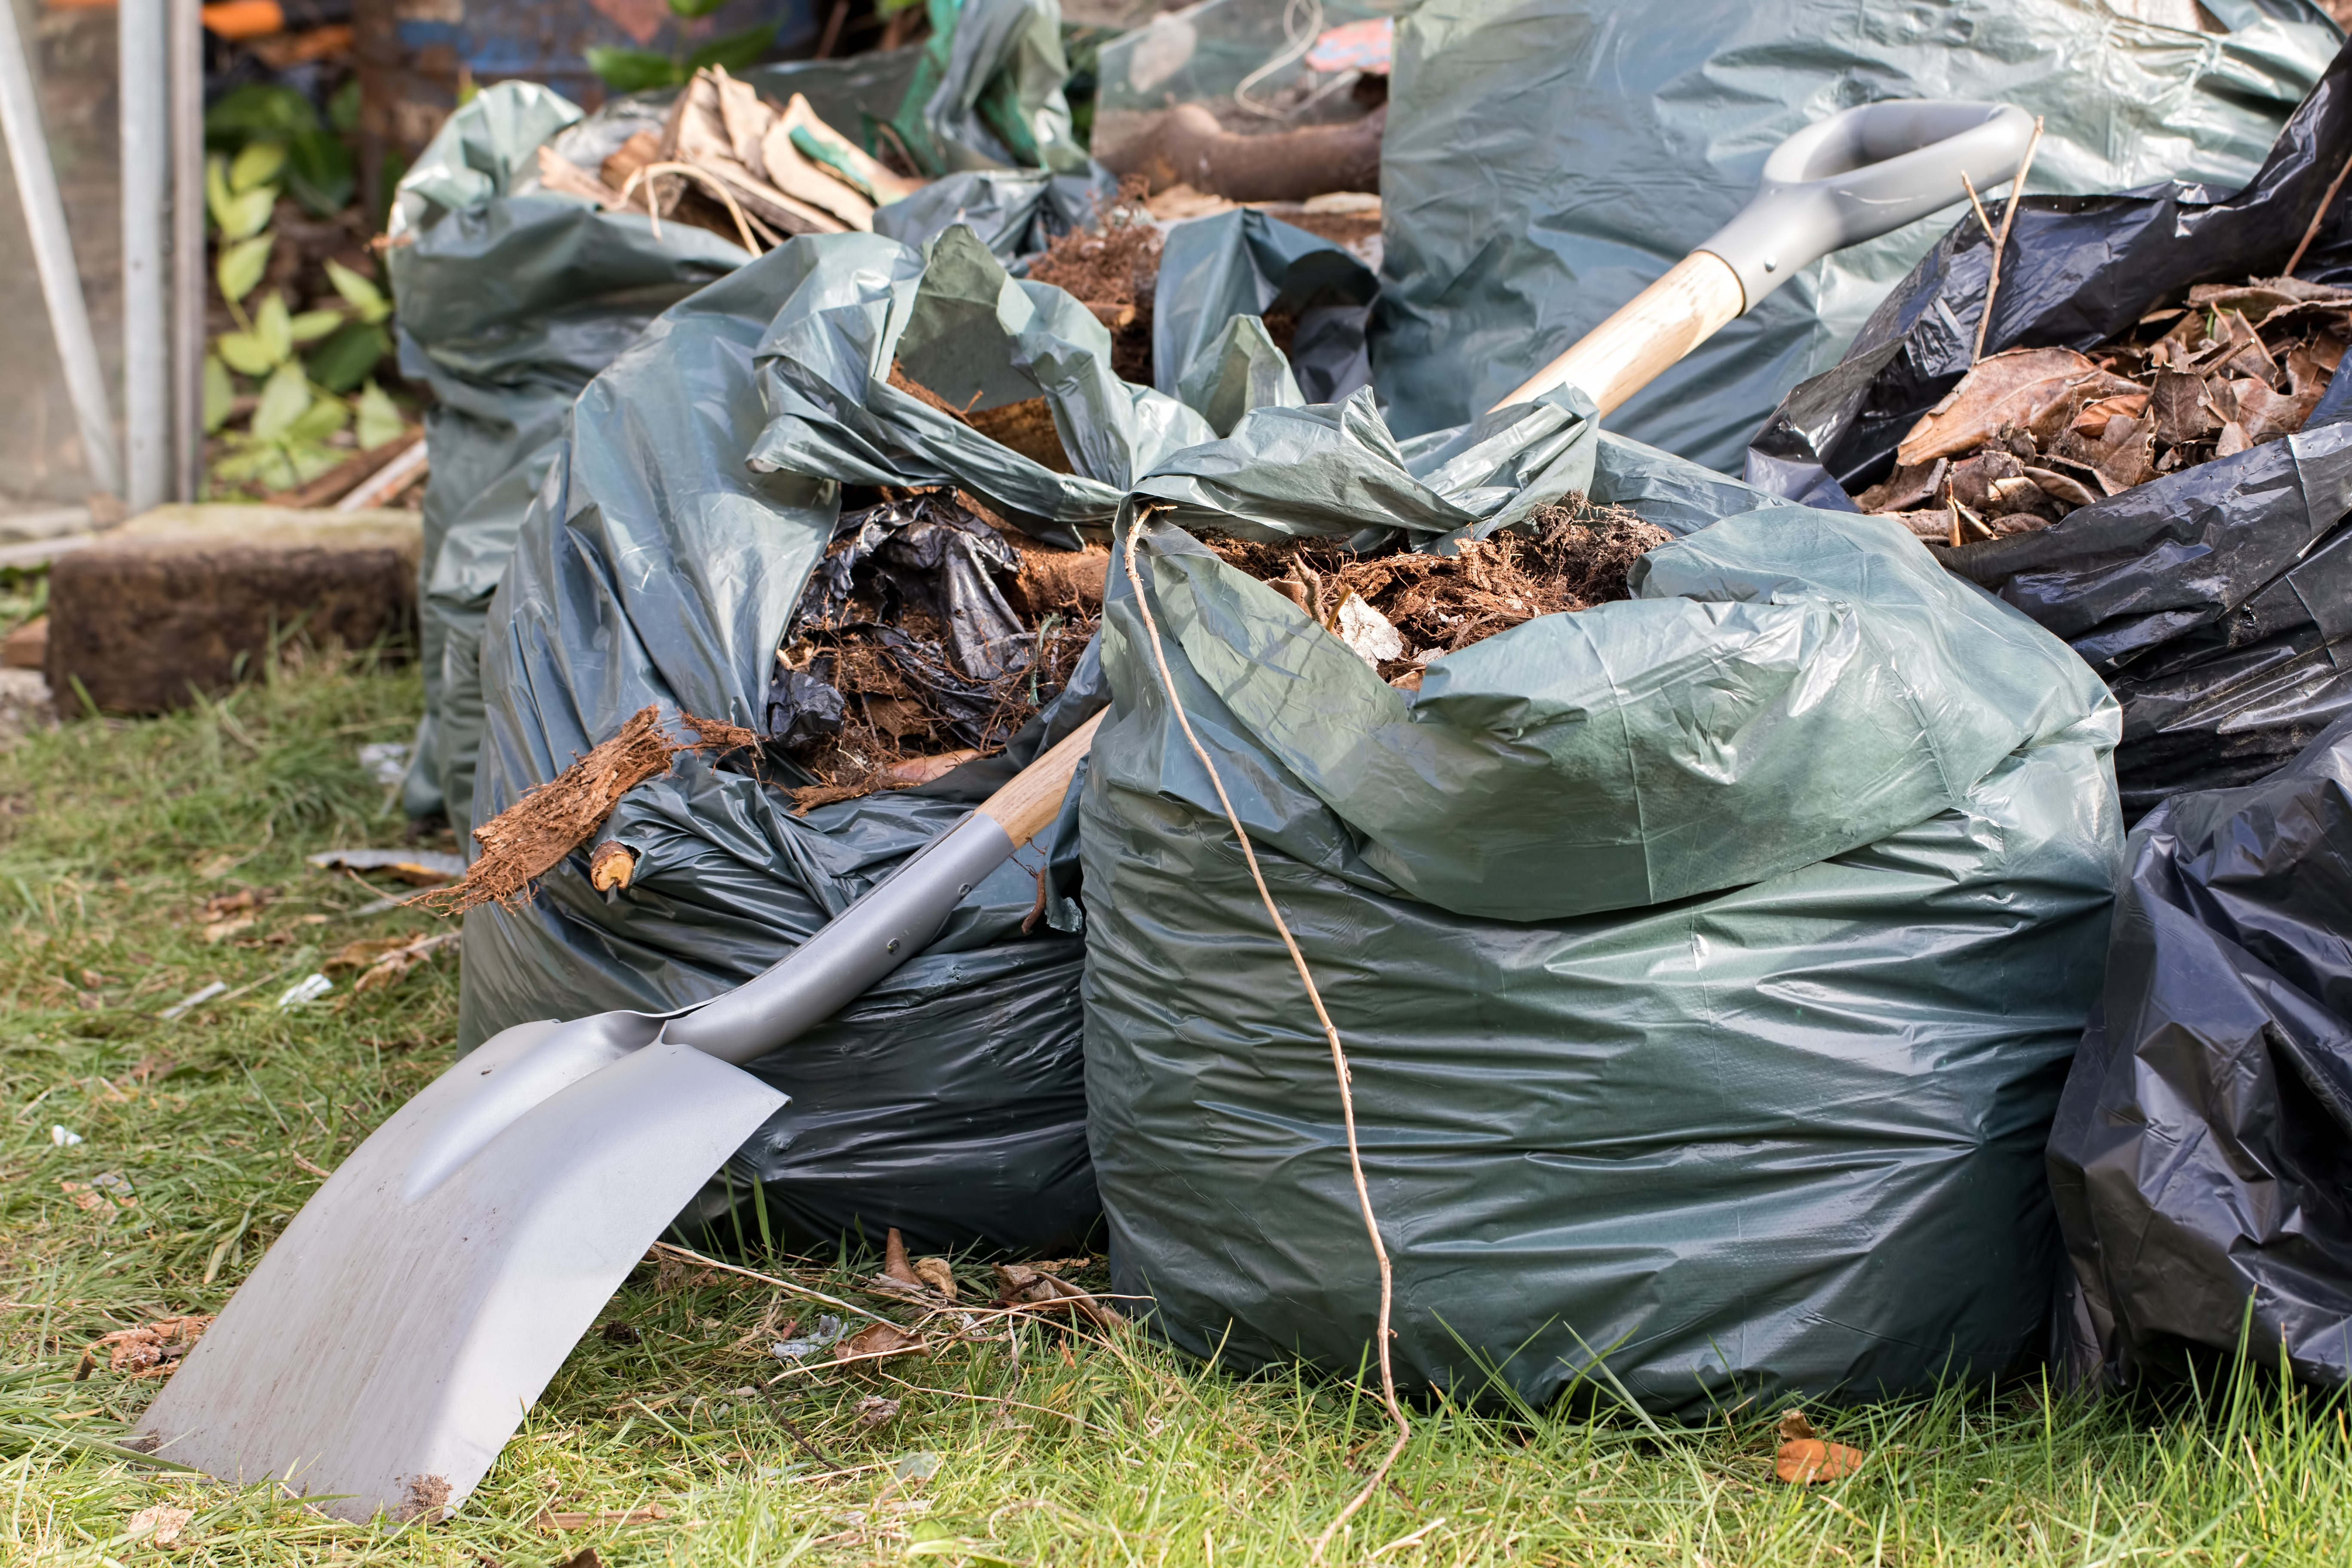 Garden waste. Brown leaves and rubbish collected from a gardening tidy up. Spade over sacks of garden refuse on a lawn.